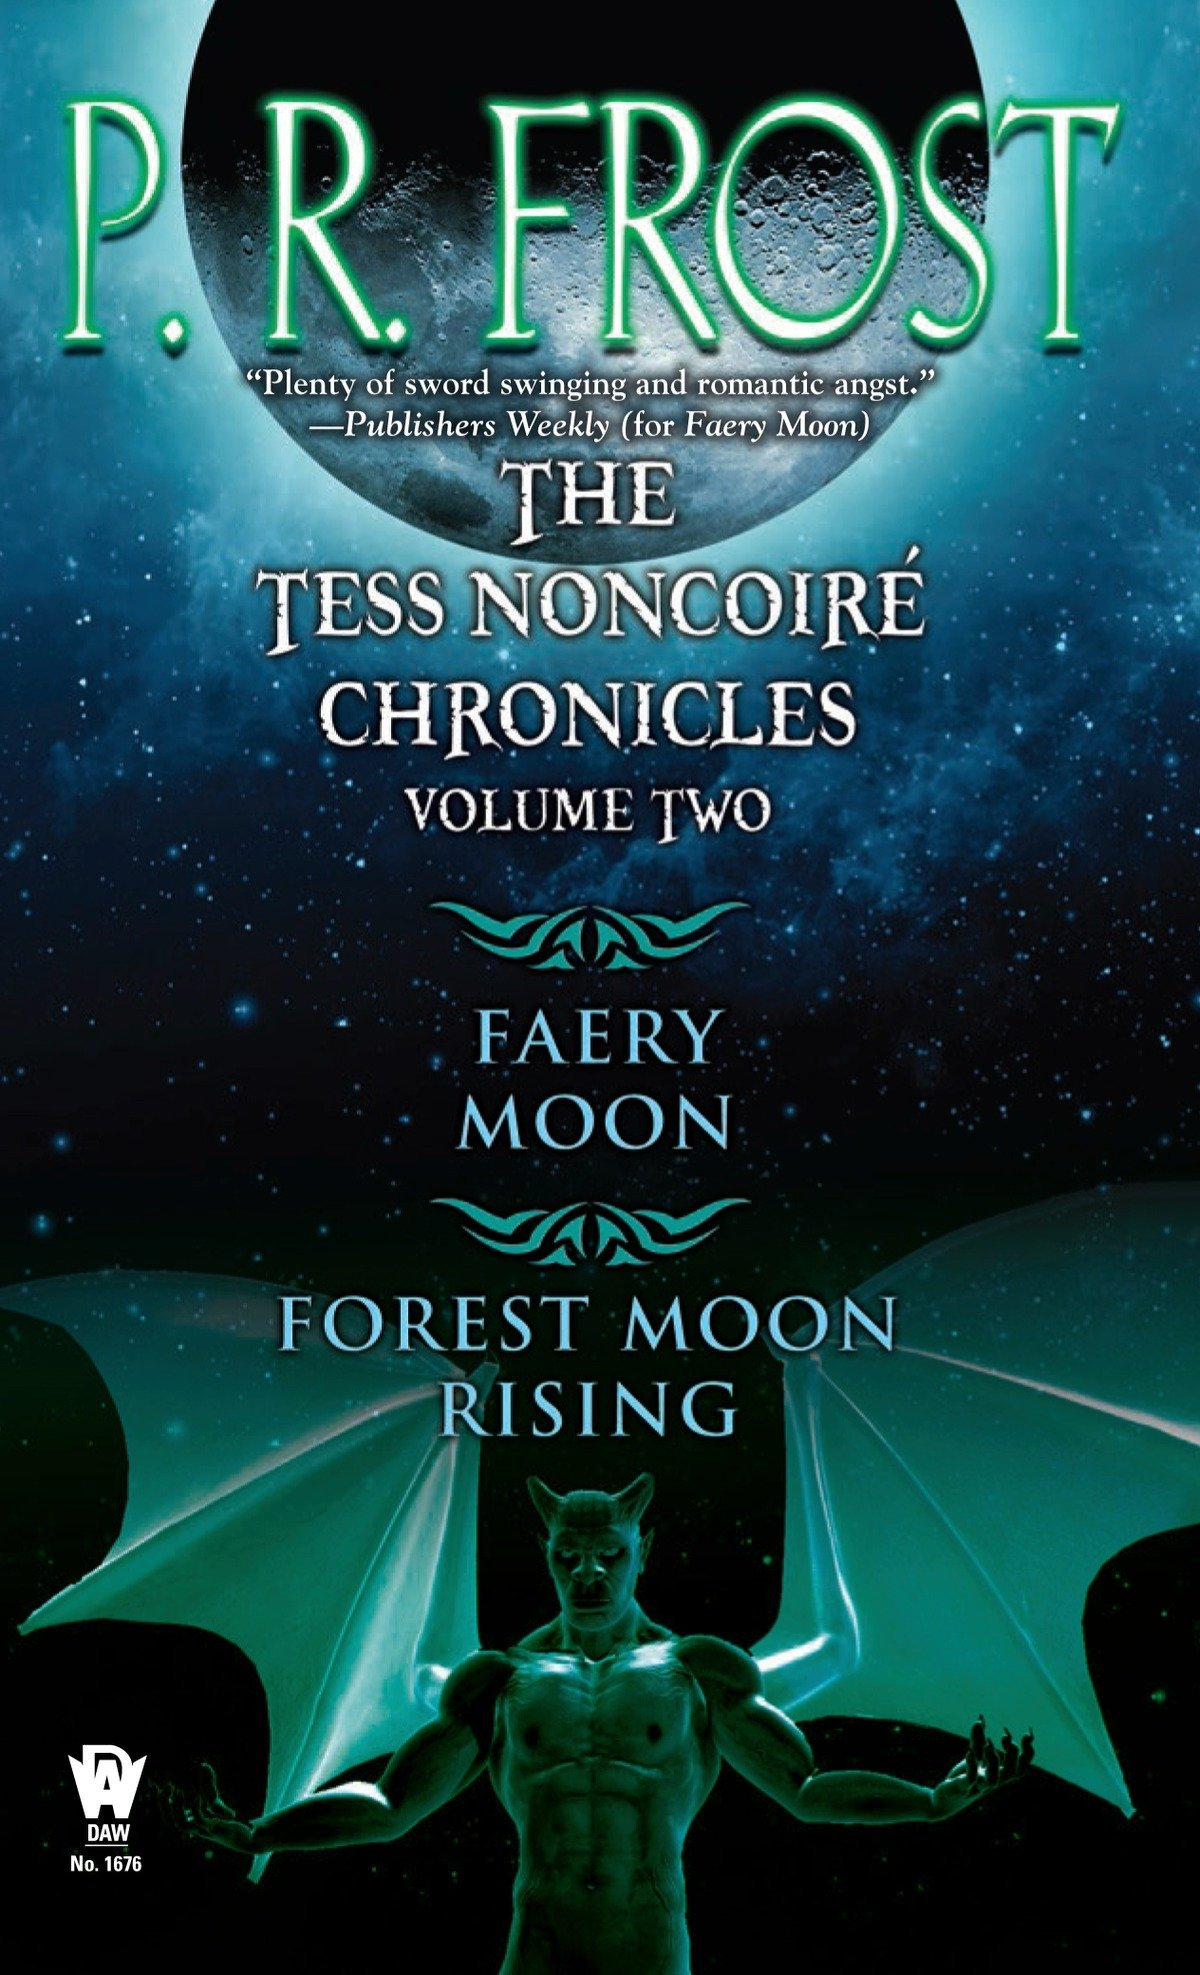 The Tess Noncoiré Chronicles: Volume II by P.R. Frost